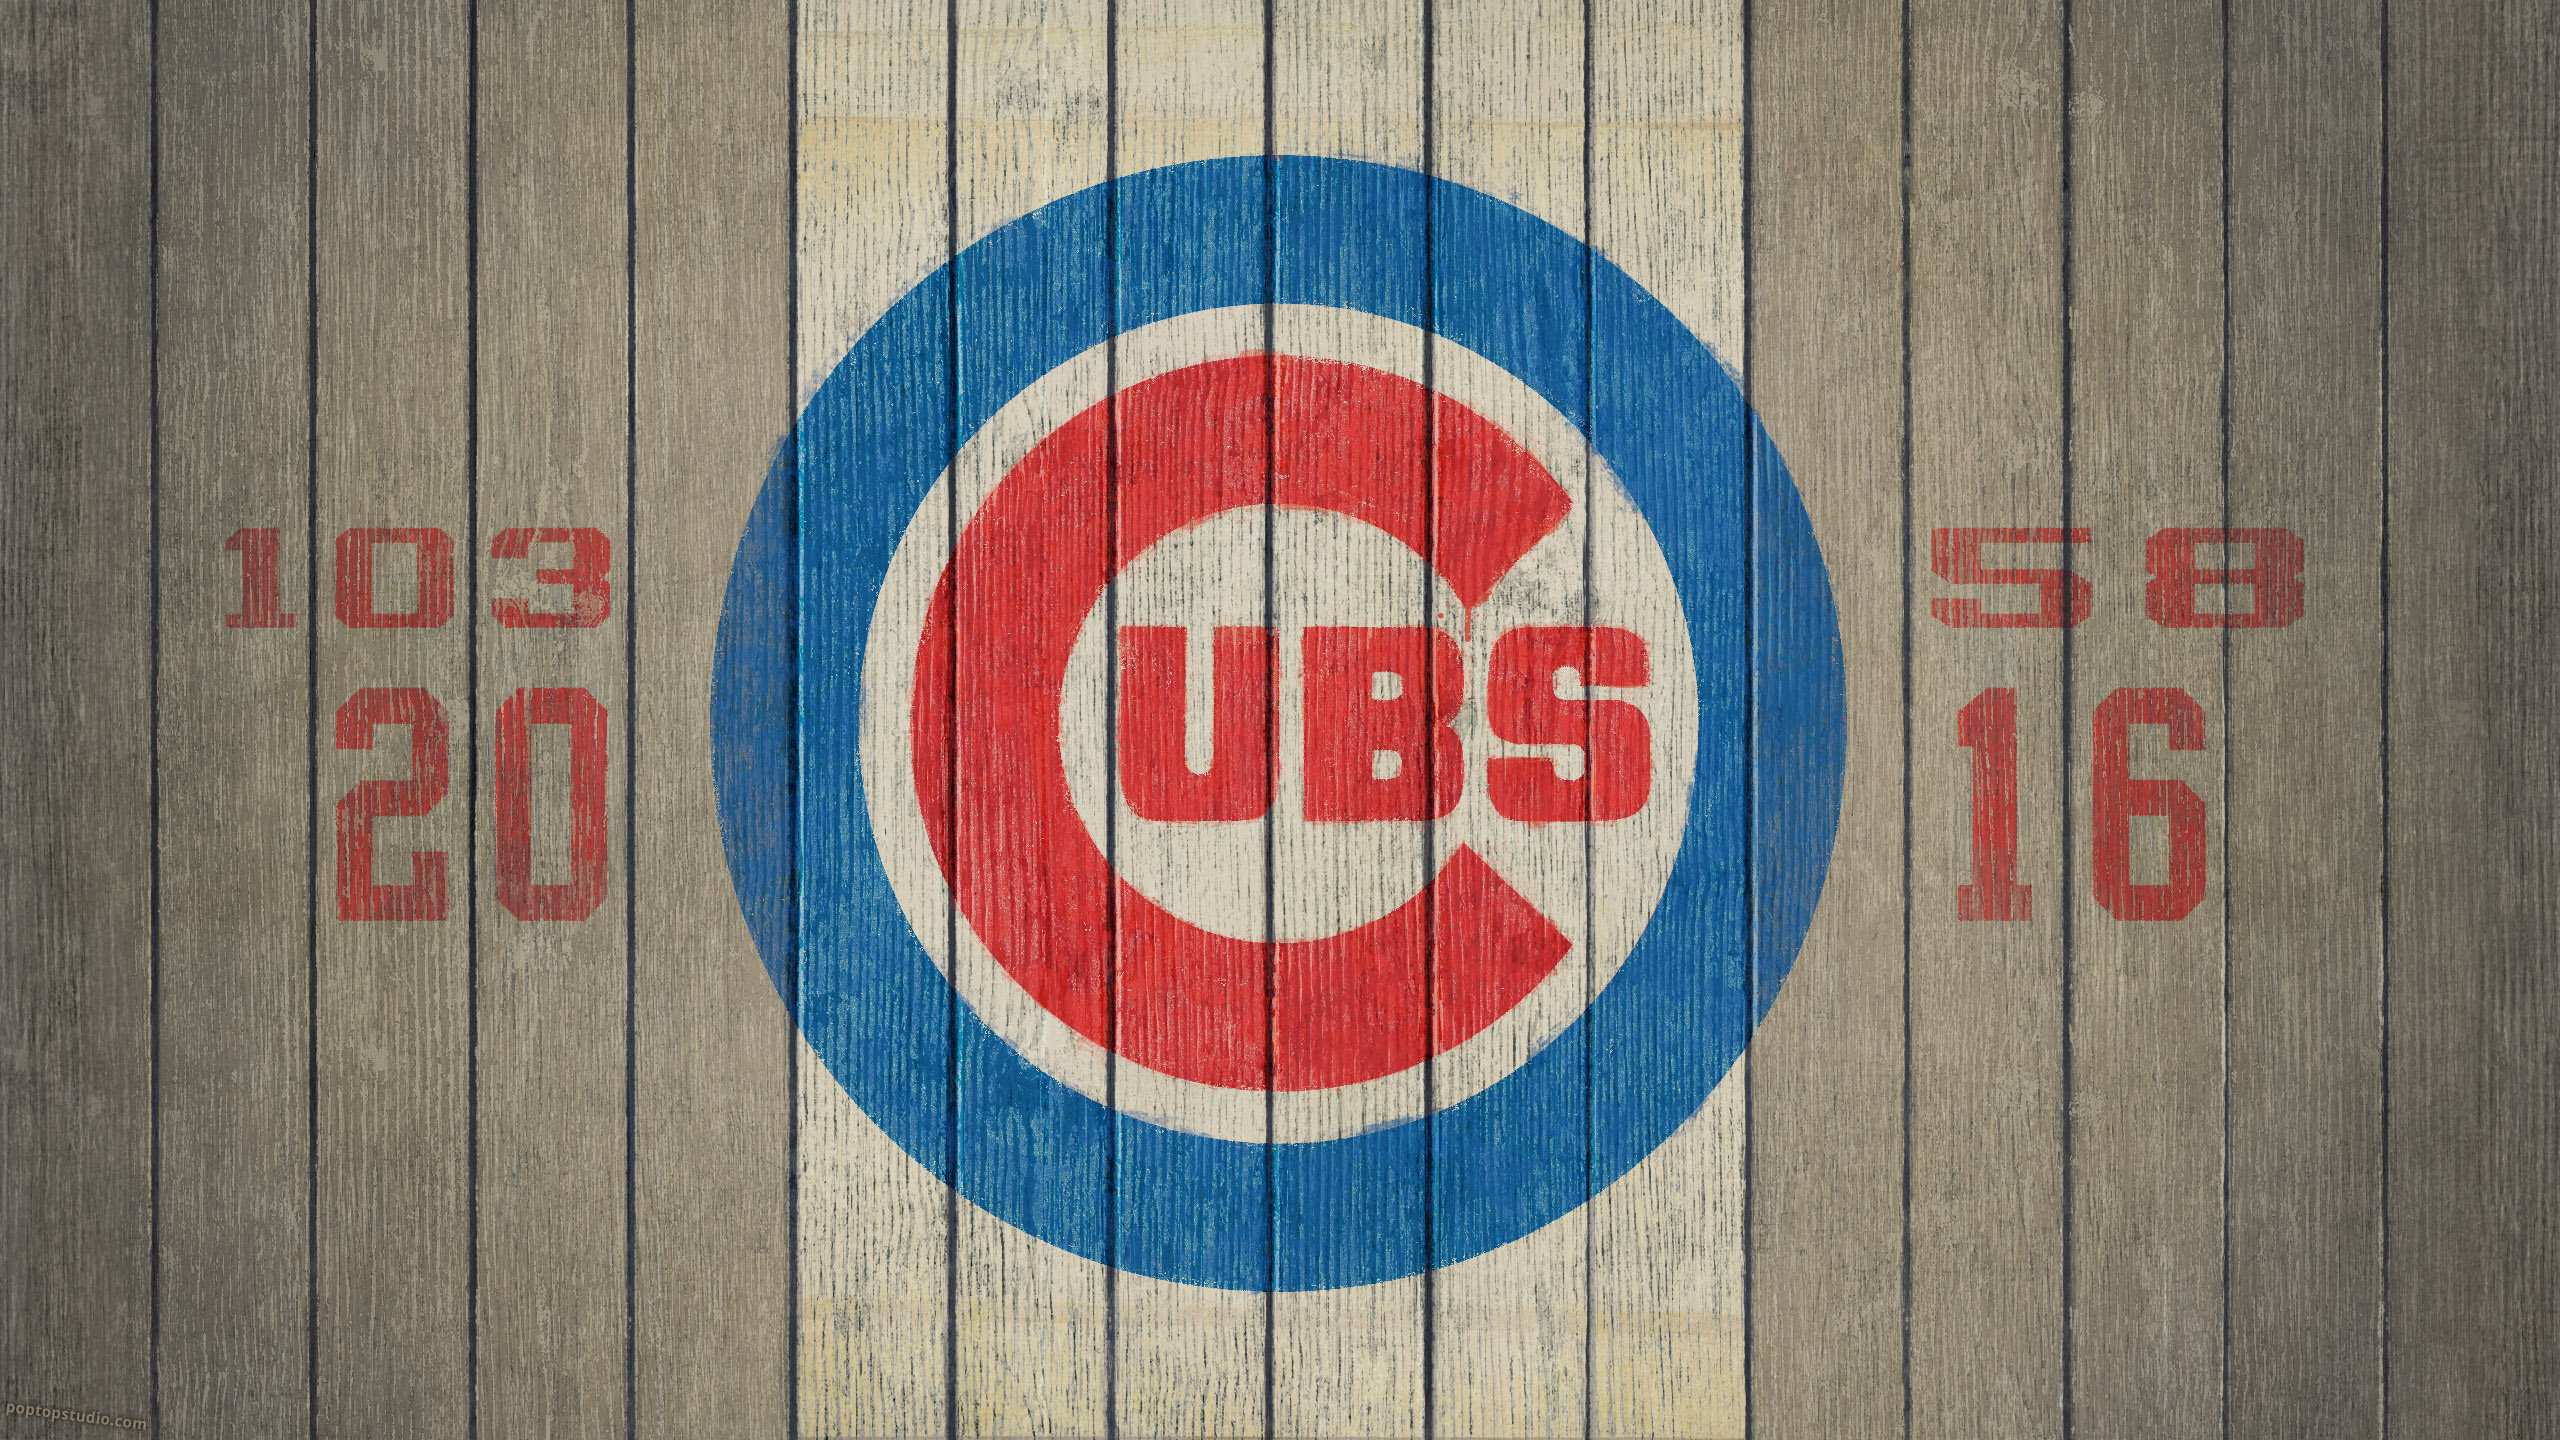 2560x1440 - Chicago Cubs Wallpapers 2